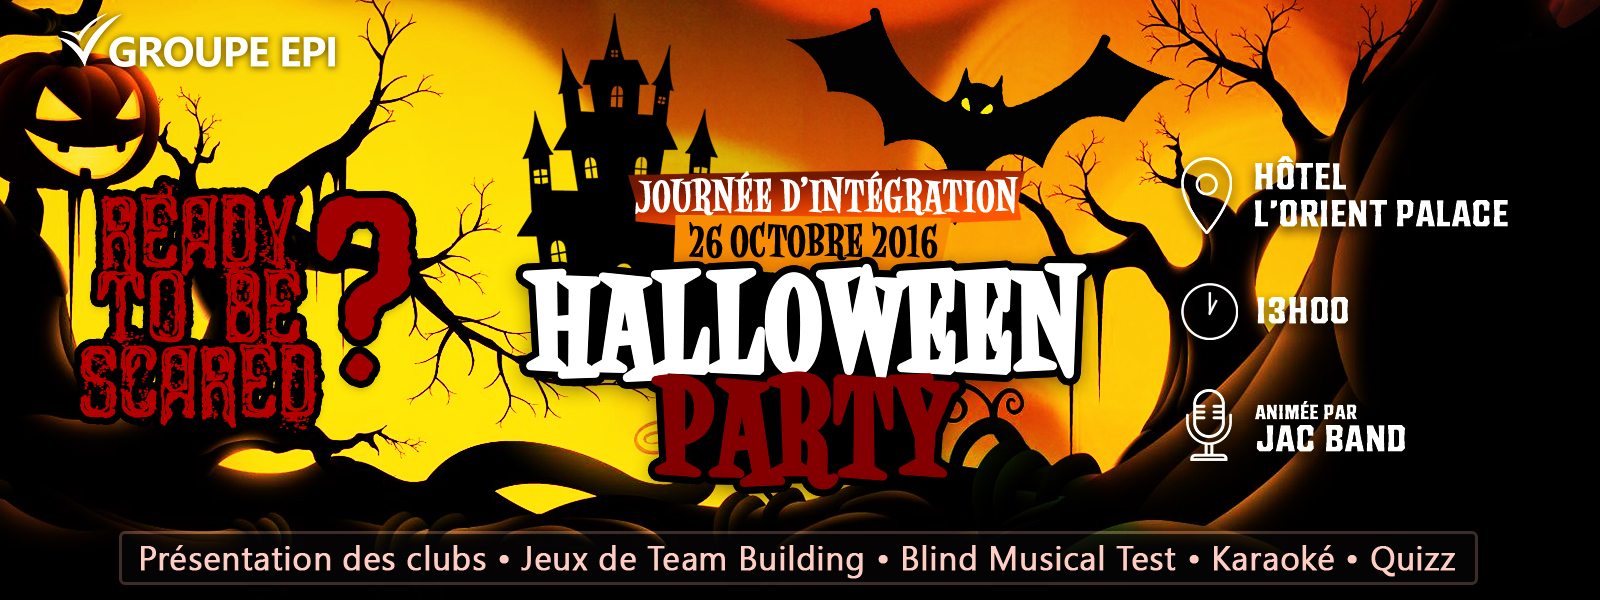 EPI Sousse Halloween Party Event Cover